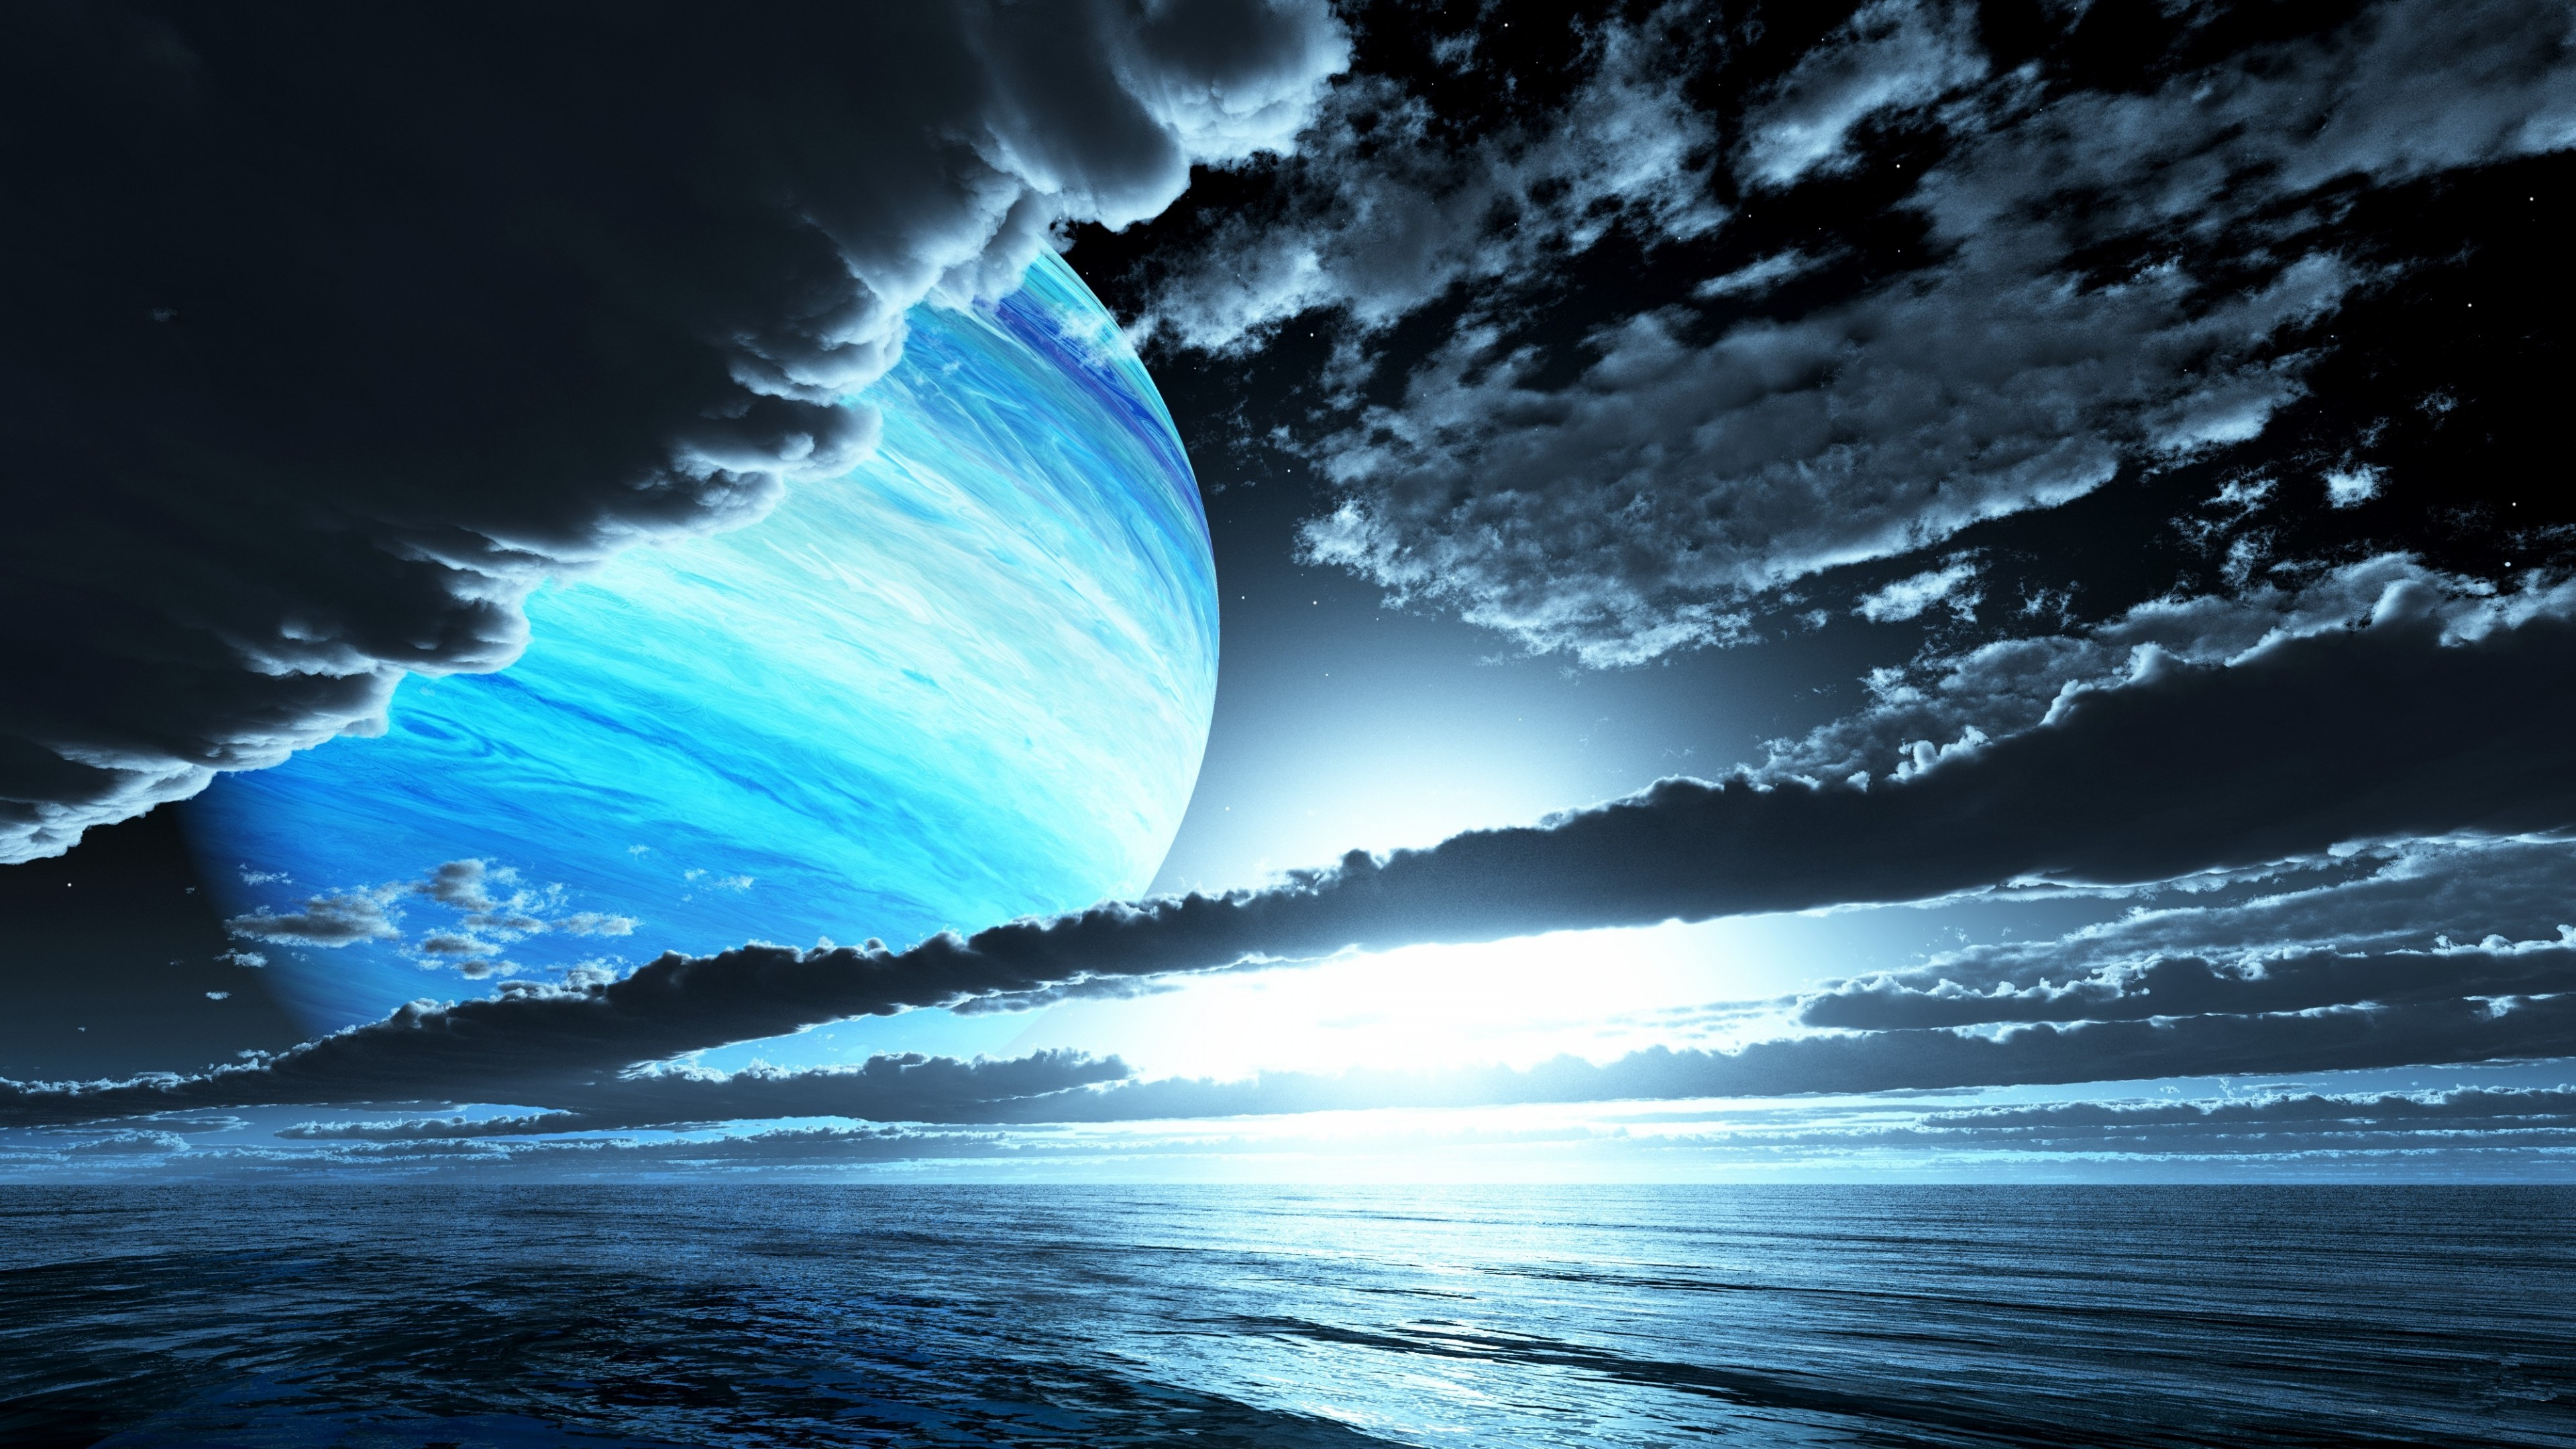 Wallpaper planet clouds ocean 4k Space 16031 Page 2